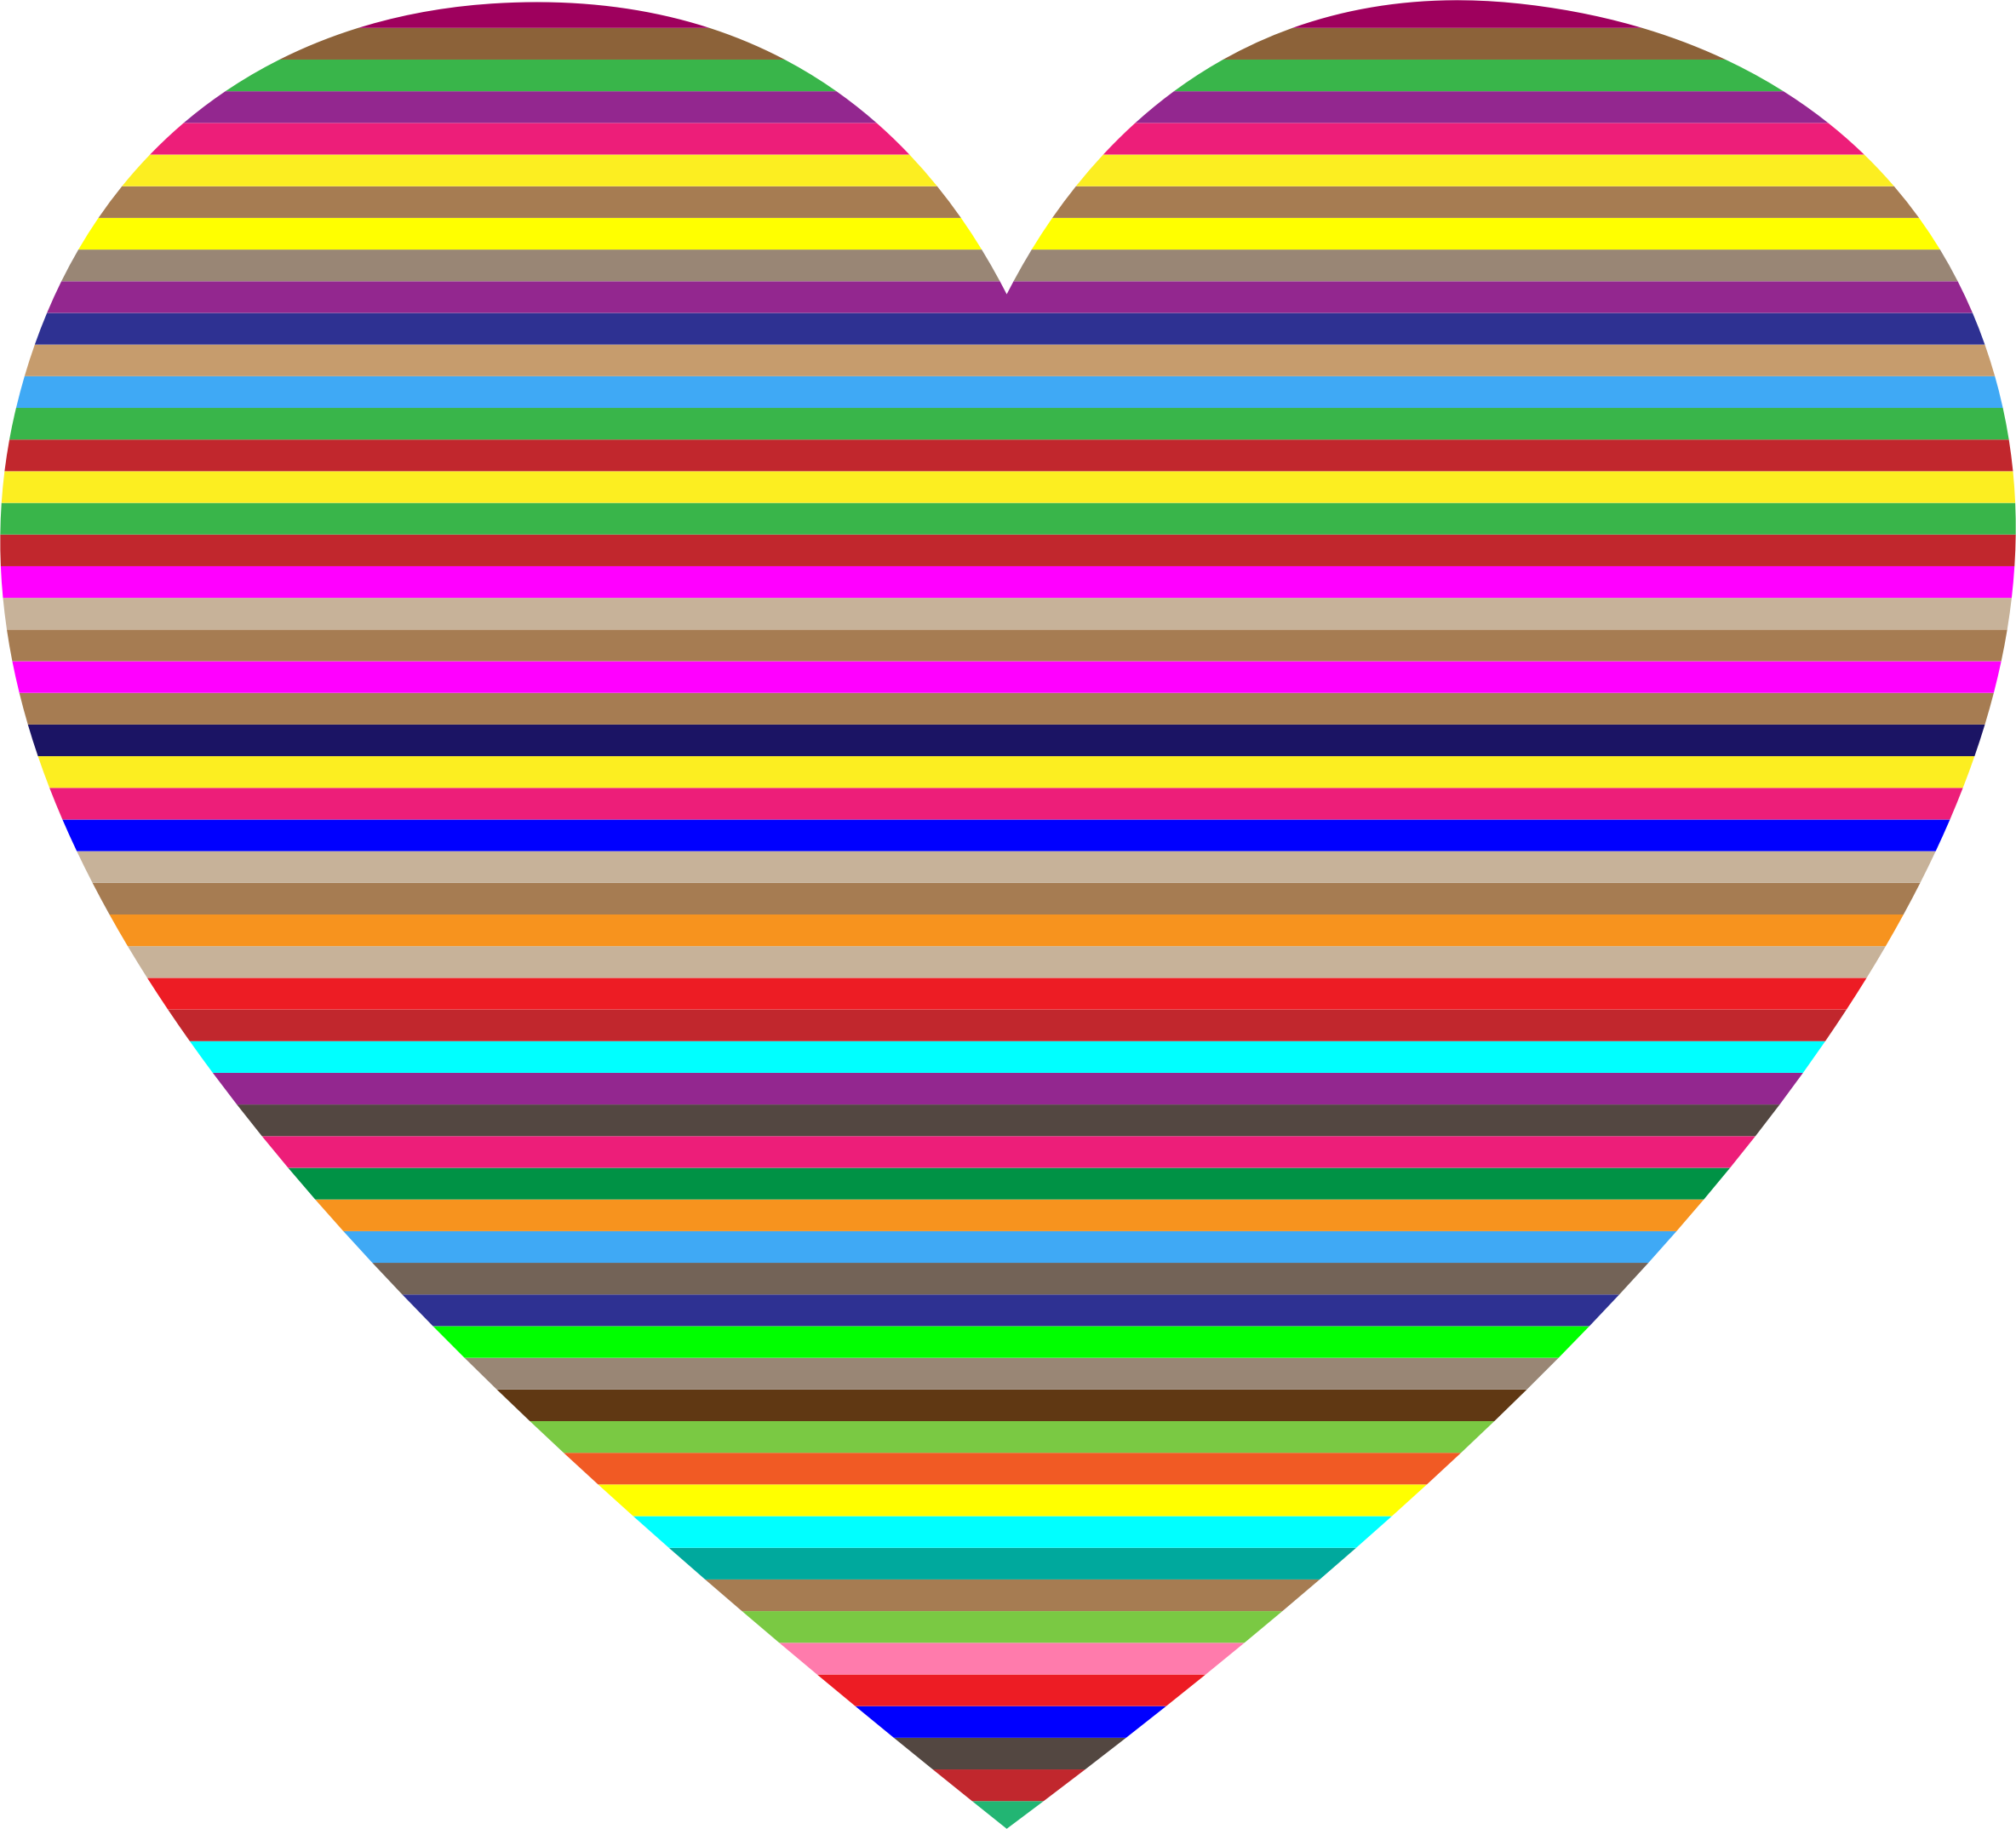 Colorful Horizontal Striped Heart by GDJ